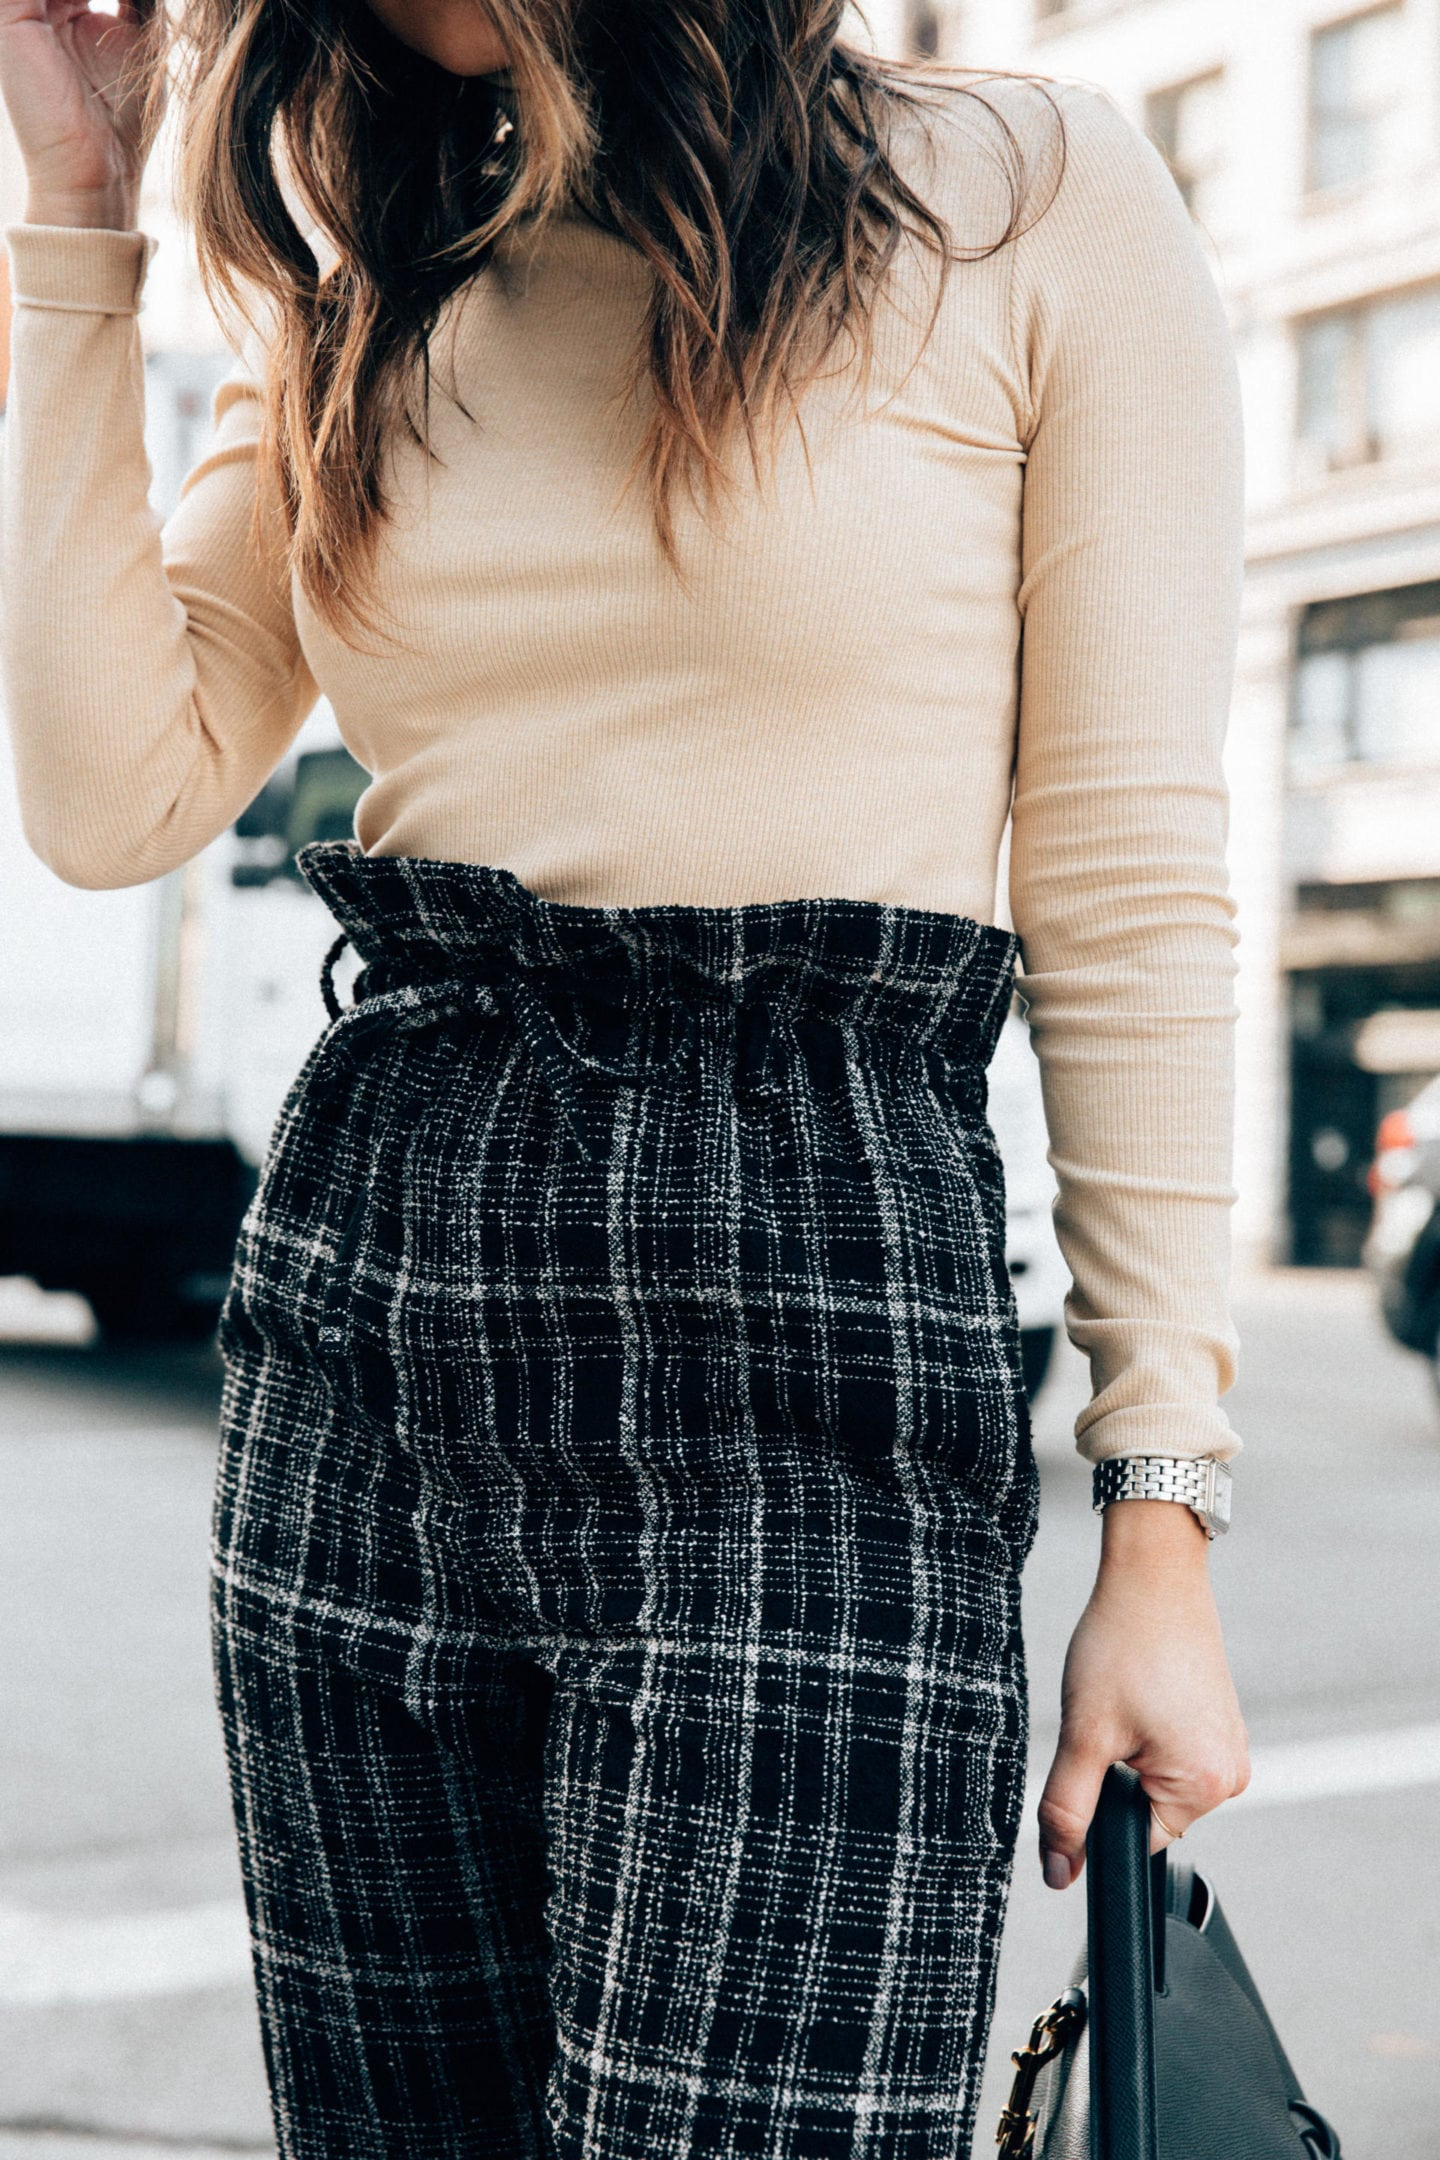 How to Set Realistic New Year's Resolutions - Green Plaid Trousers with Tan Turtleneck Sweater | Thegirlfrompanama.com